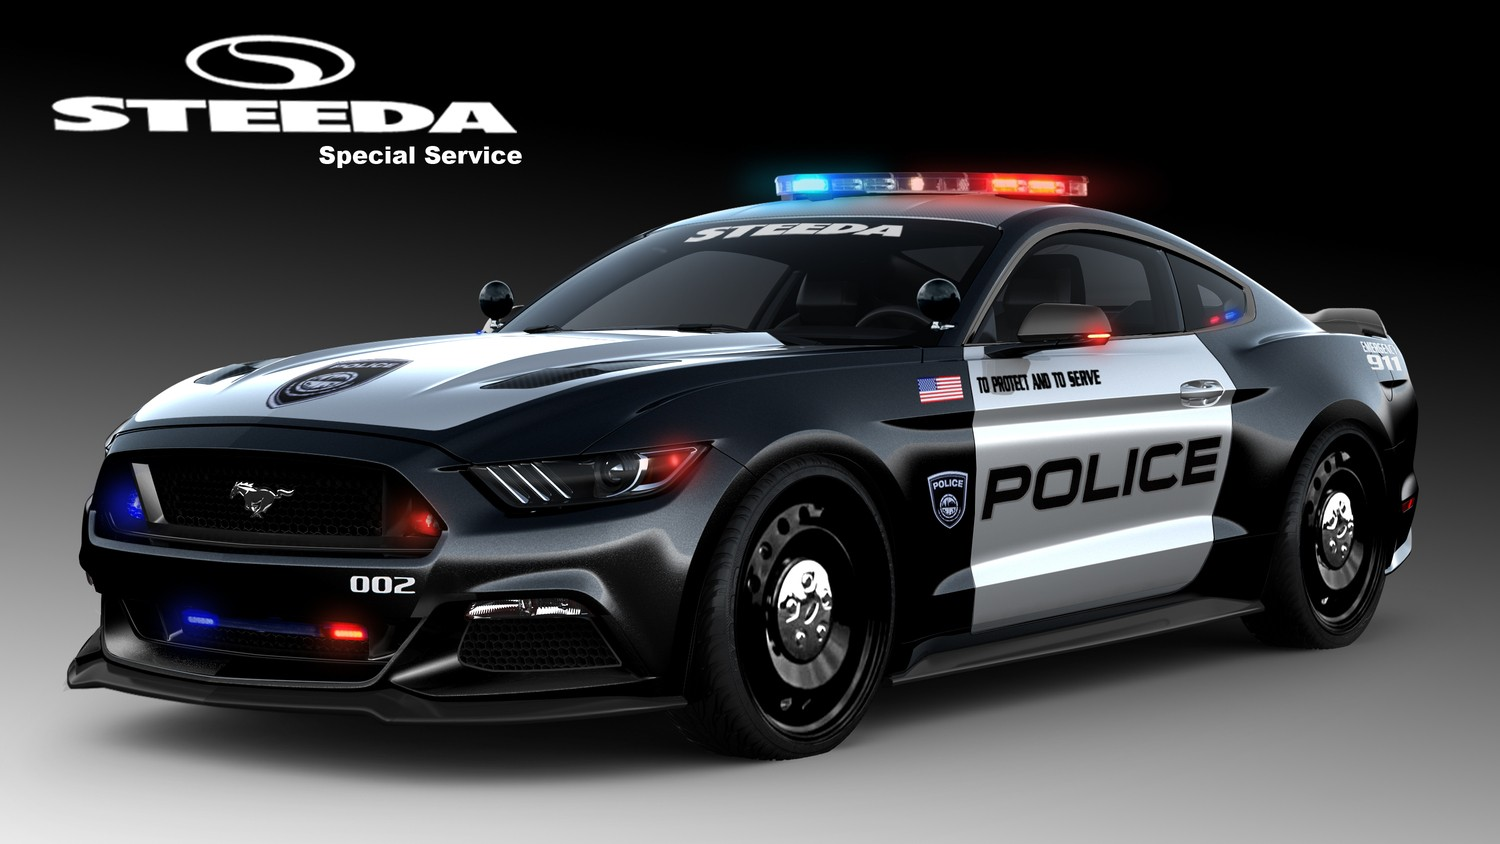 s550 mustang police car from steeda is ready to protect. Black Bedroom Furniture Sets. Home Design Ideas